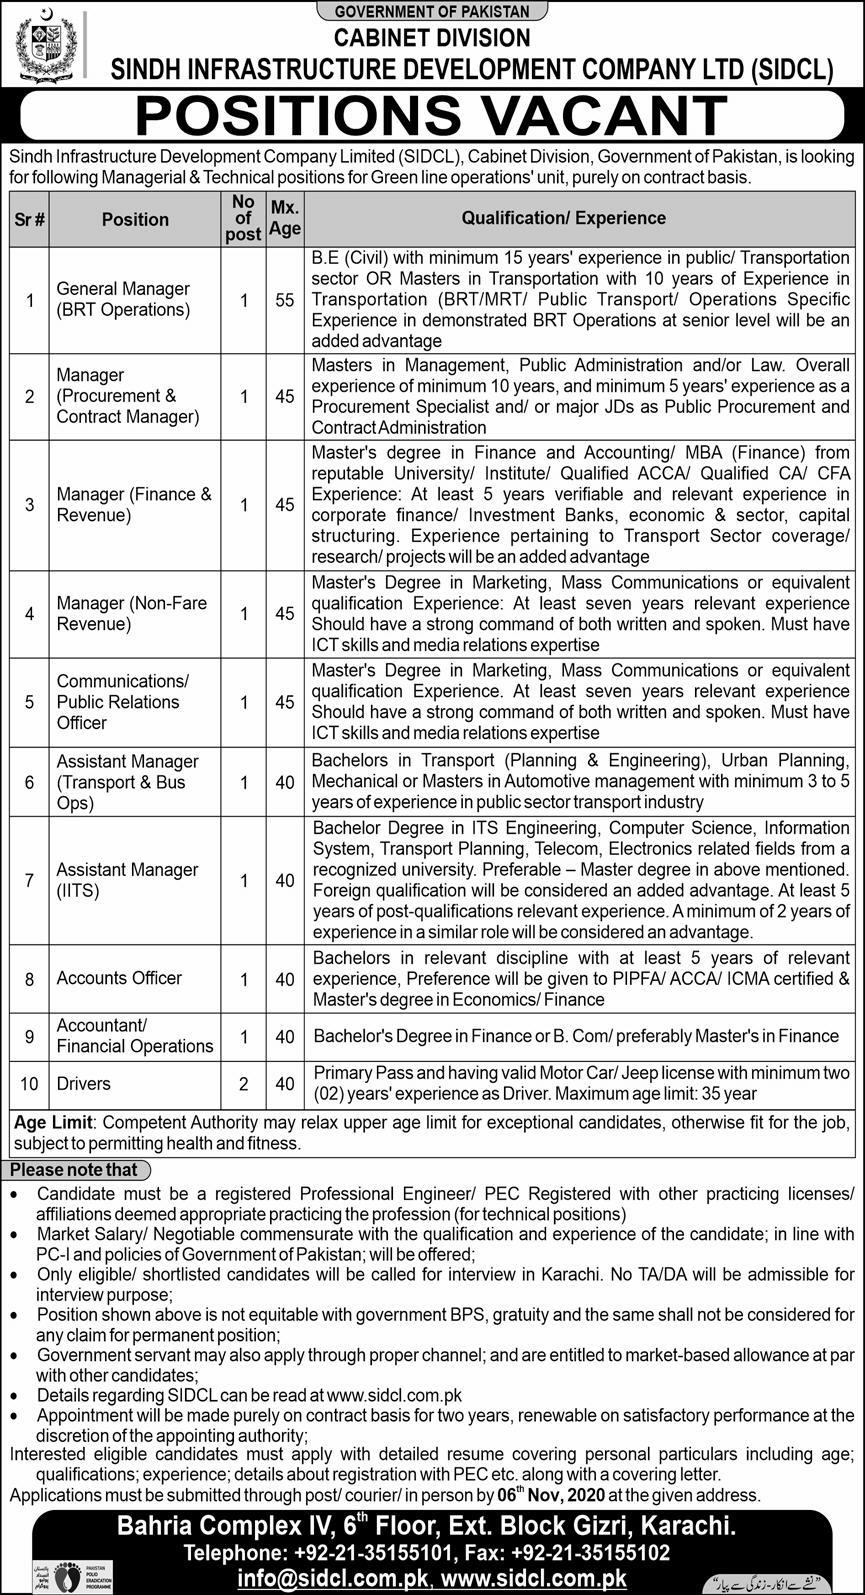 Sindh Infrastructure Development Company Limitd Cabinet Division Jobs October 2020